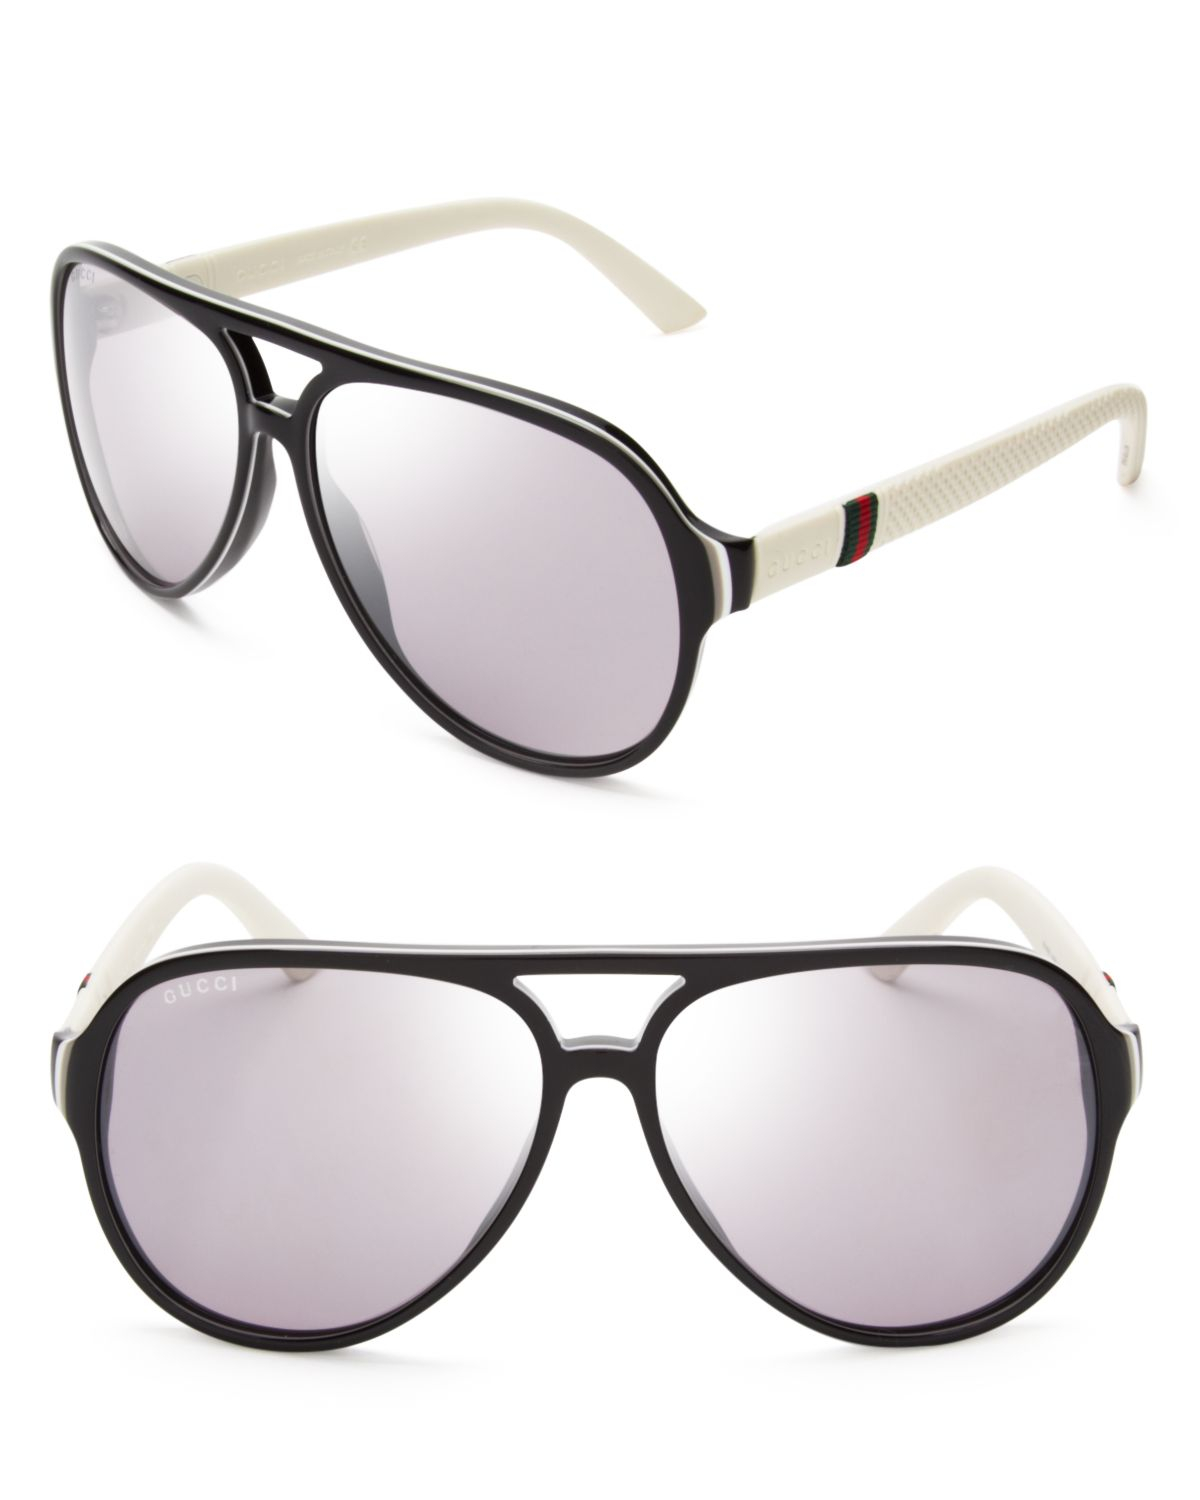 Gucci Mirrored Sunglasses  gucci mirrored aviator sunglasses in black lyst